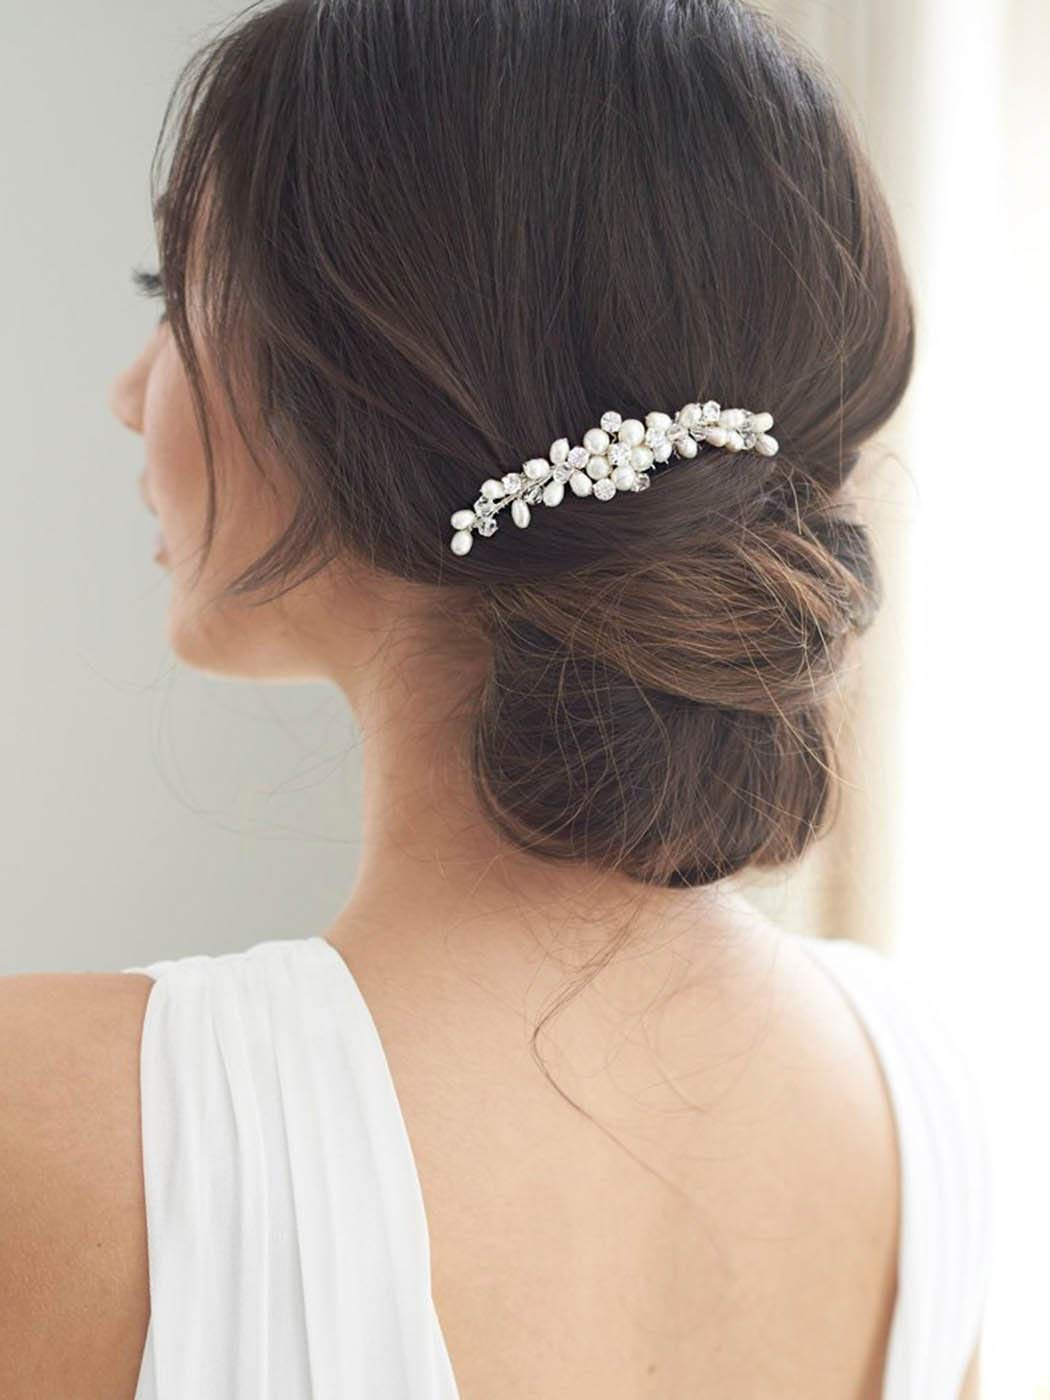 Brishow Bride Wedding Hair Comb Crystal Bridal Hair Pieces Pearl Hair Accessories For Women And Girls Silver Buy Online In Belize Brand Brishow Products In Belize See Prices Reviews